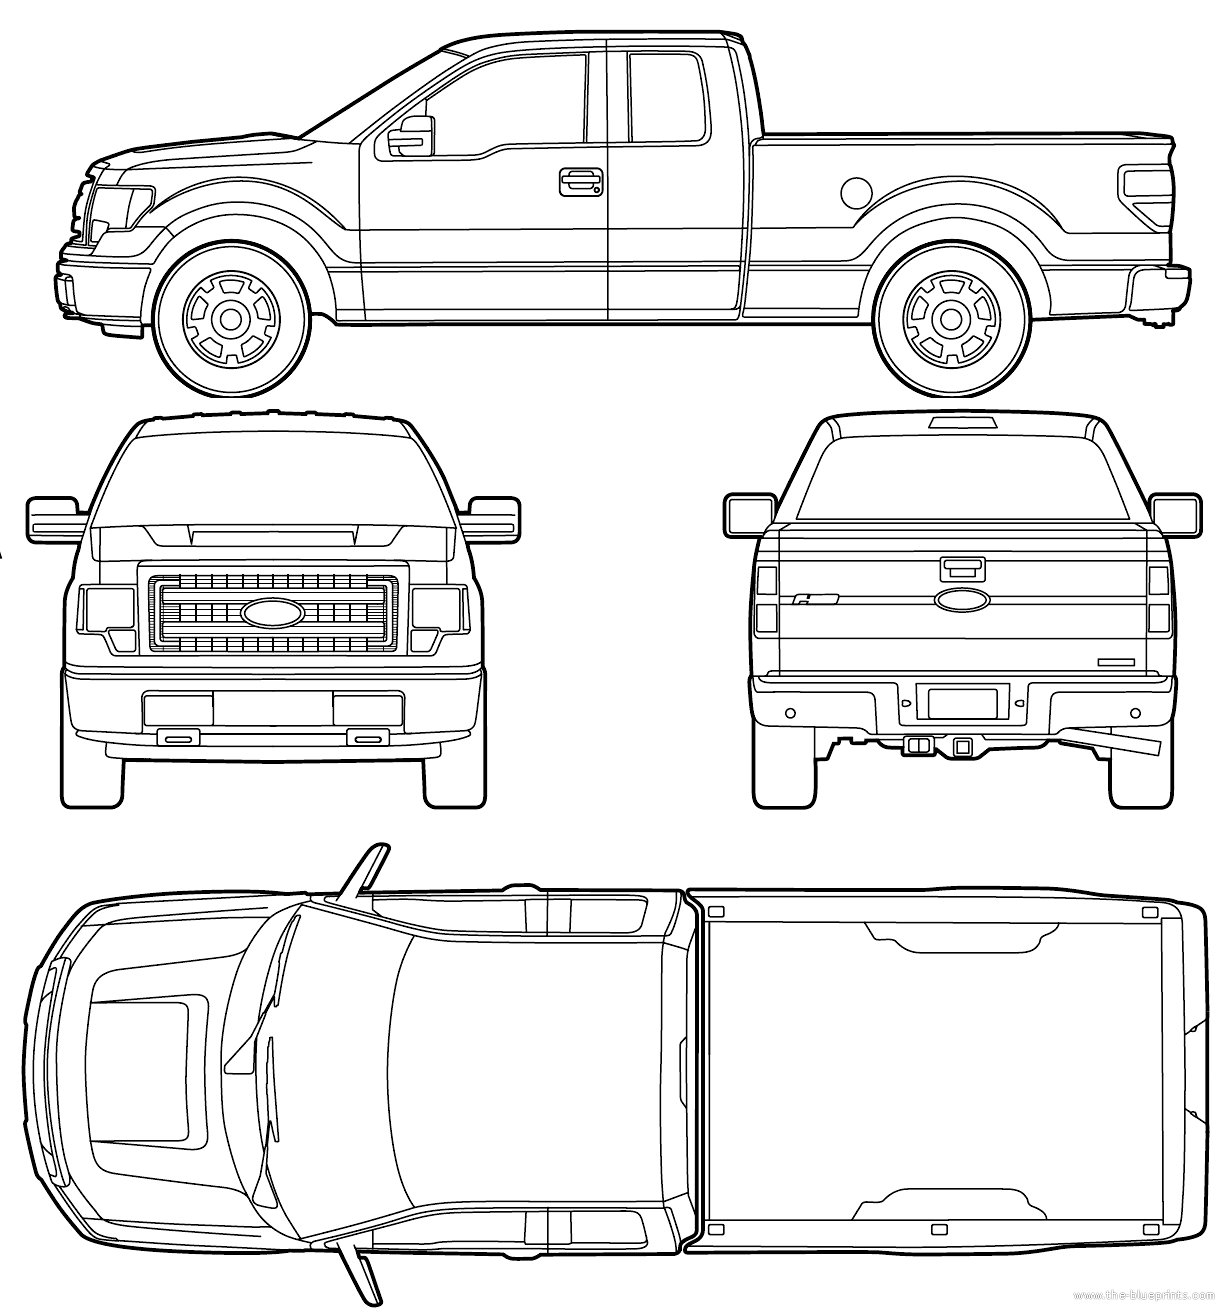 The Blueprints Com Blueprints Gt Cars Gt Ford Gt Ford F 150